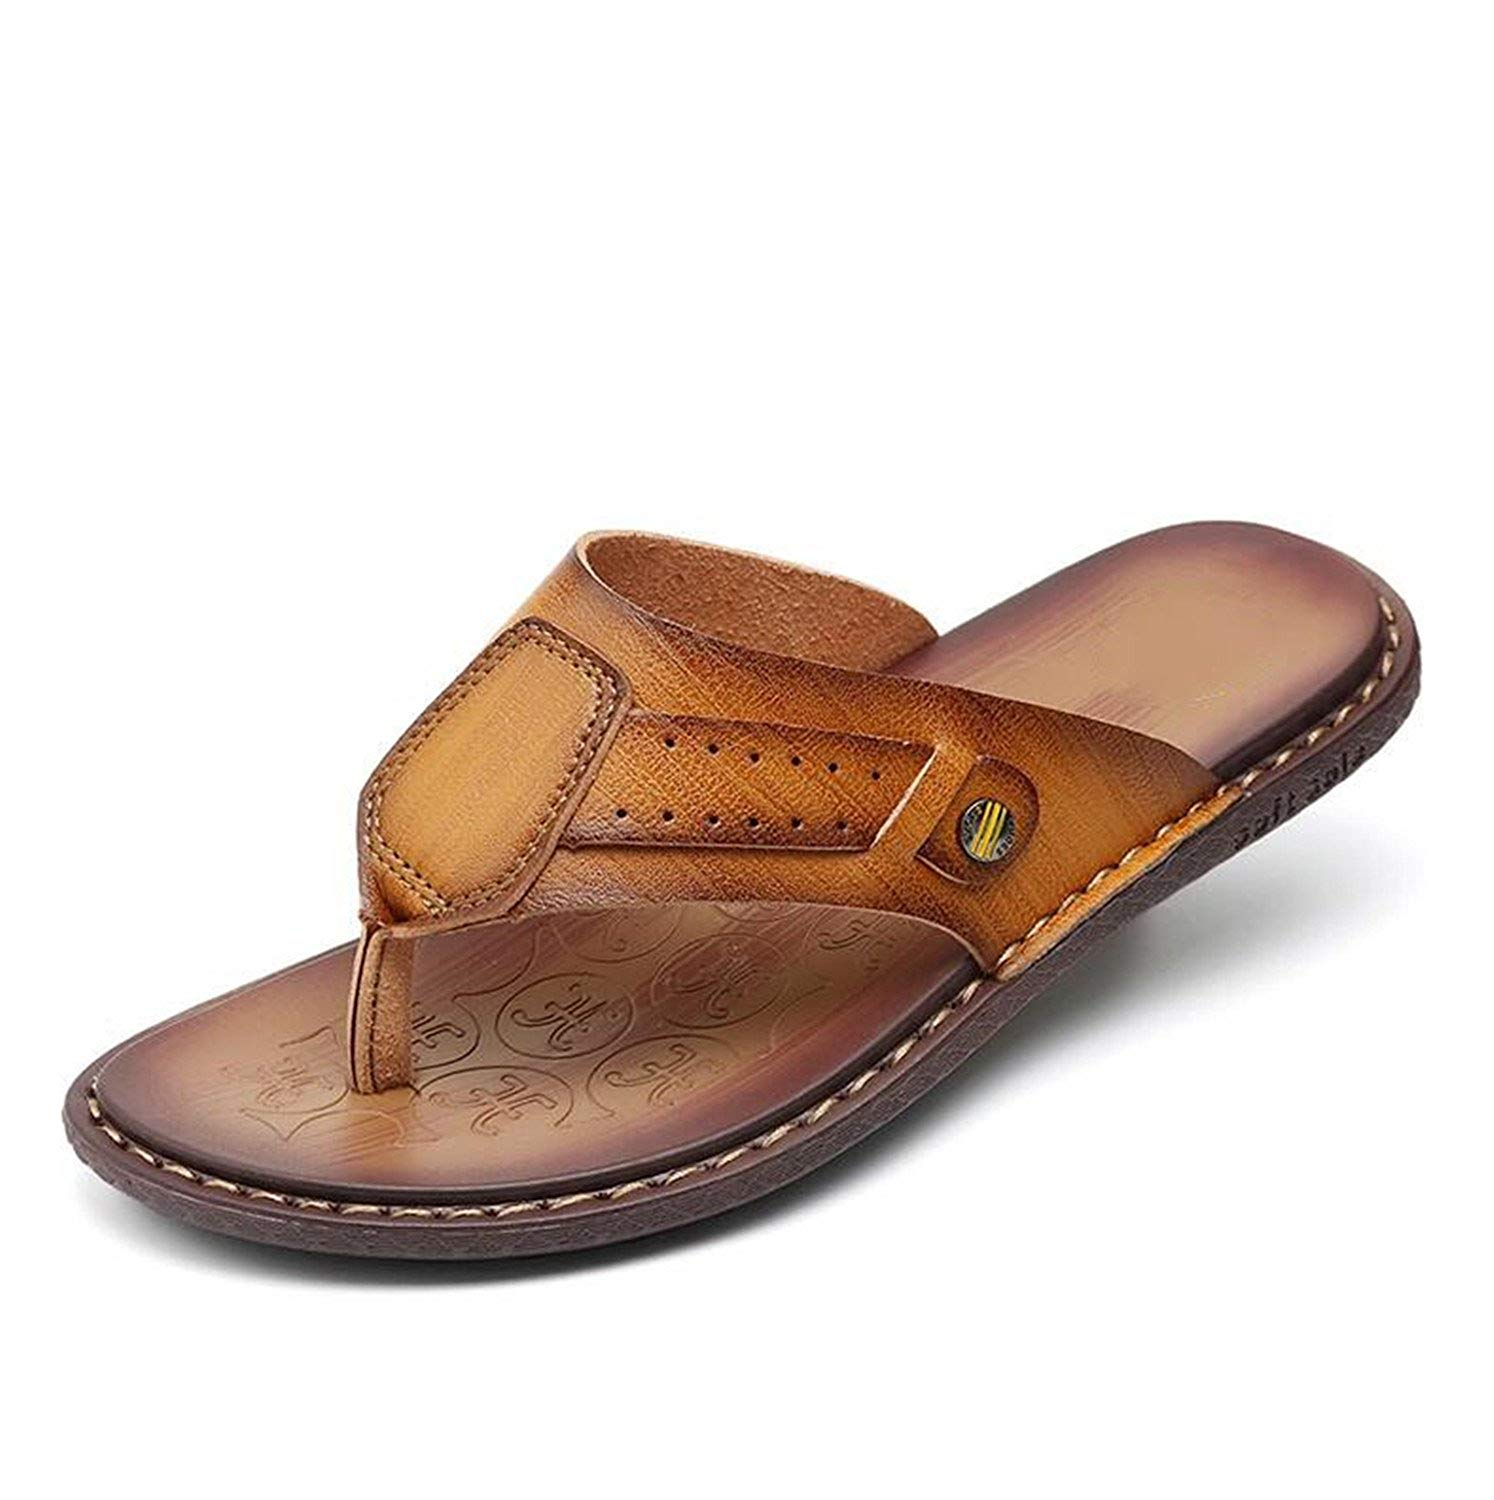 40998c49edbc Get Quotations · Marvin Cook Leather Men Slippers Flip Flops with Soft Sole  Summer Shoes Fashion Beach Sandals Shoes